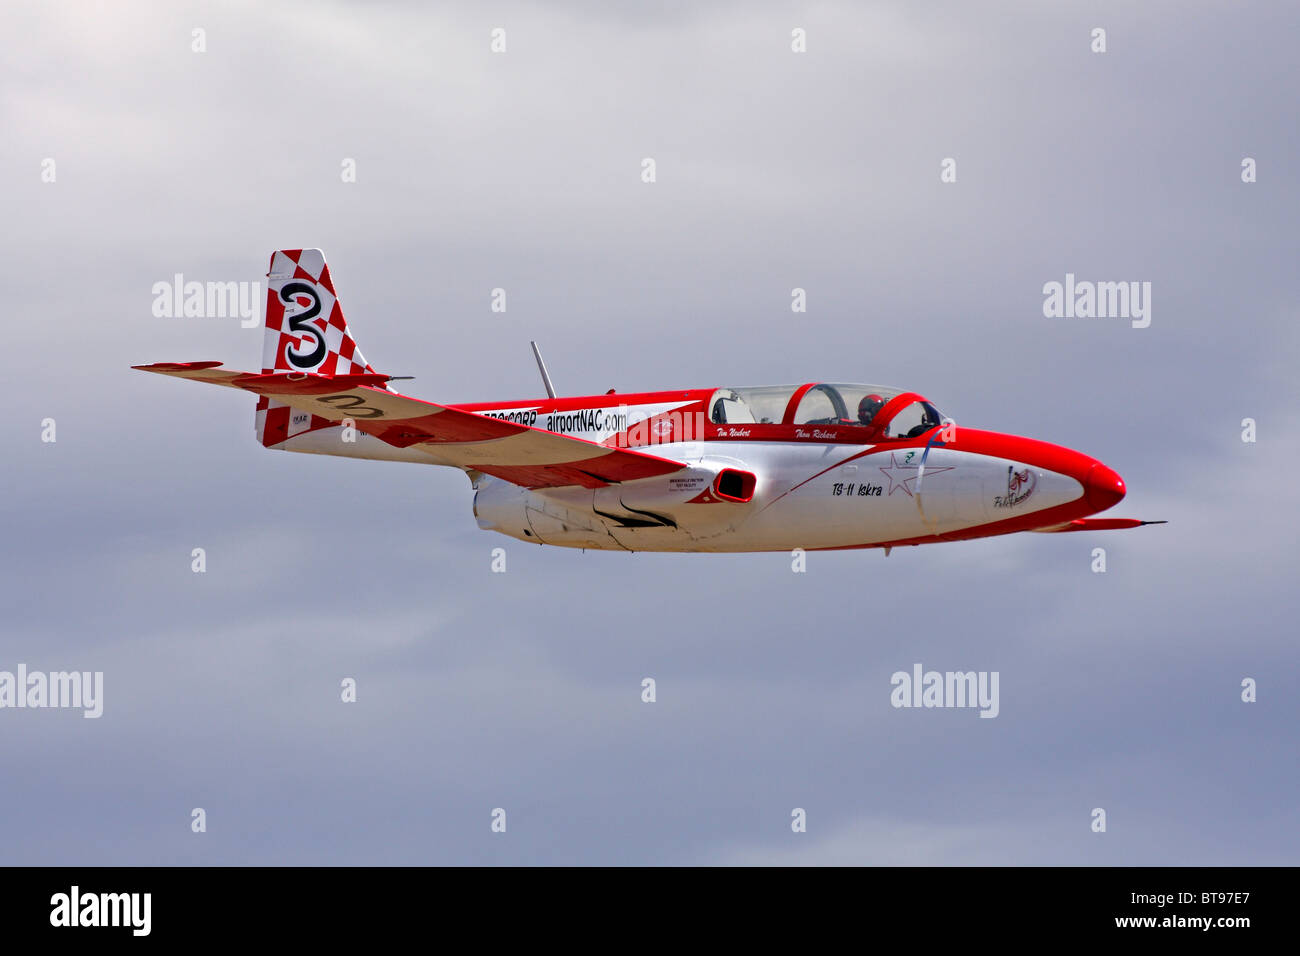 Polish designed and built TS-11 Iskra during a race at the 2010 National Championship Air Races at Stead Field in - Stock Image